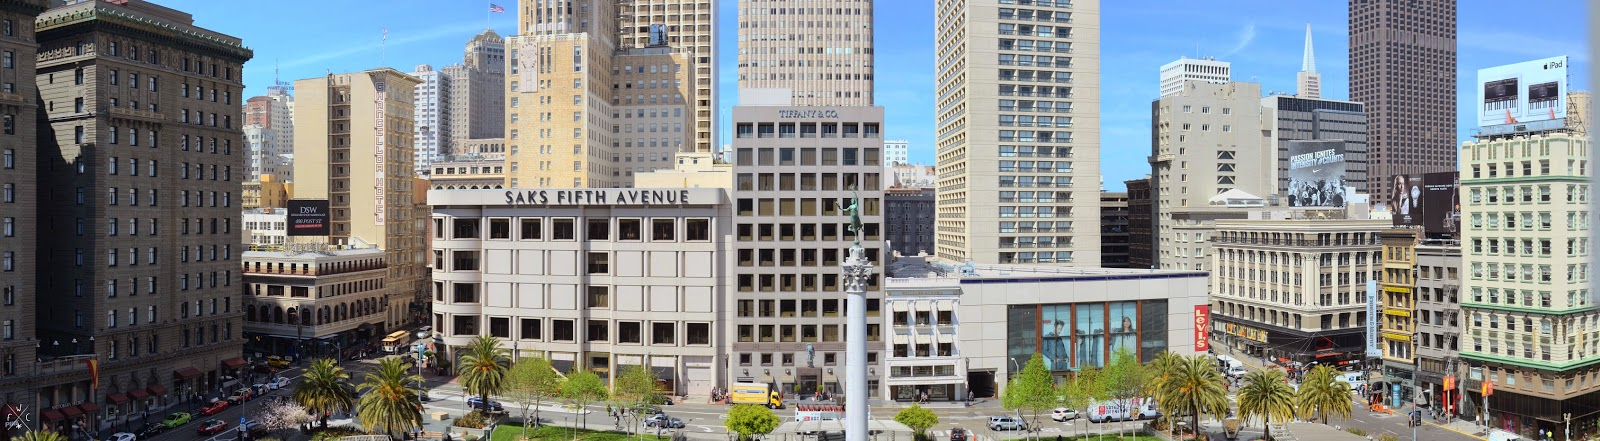 Union Square - Vues sur San Francisco, Californie, USA